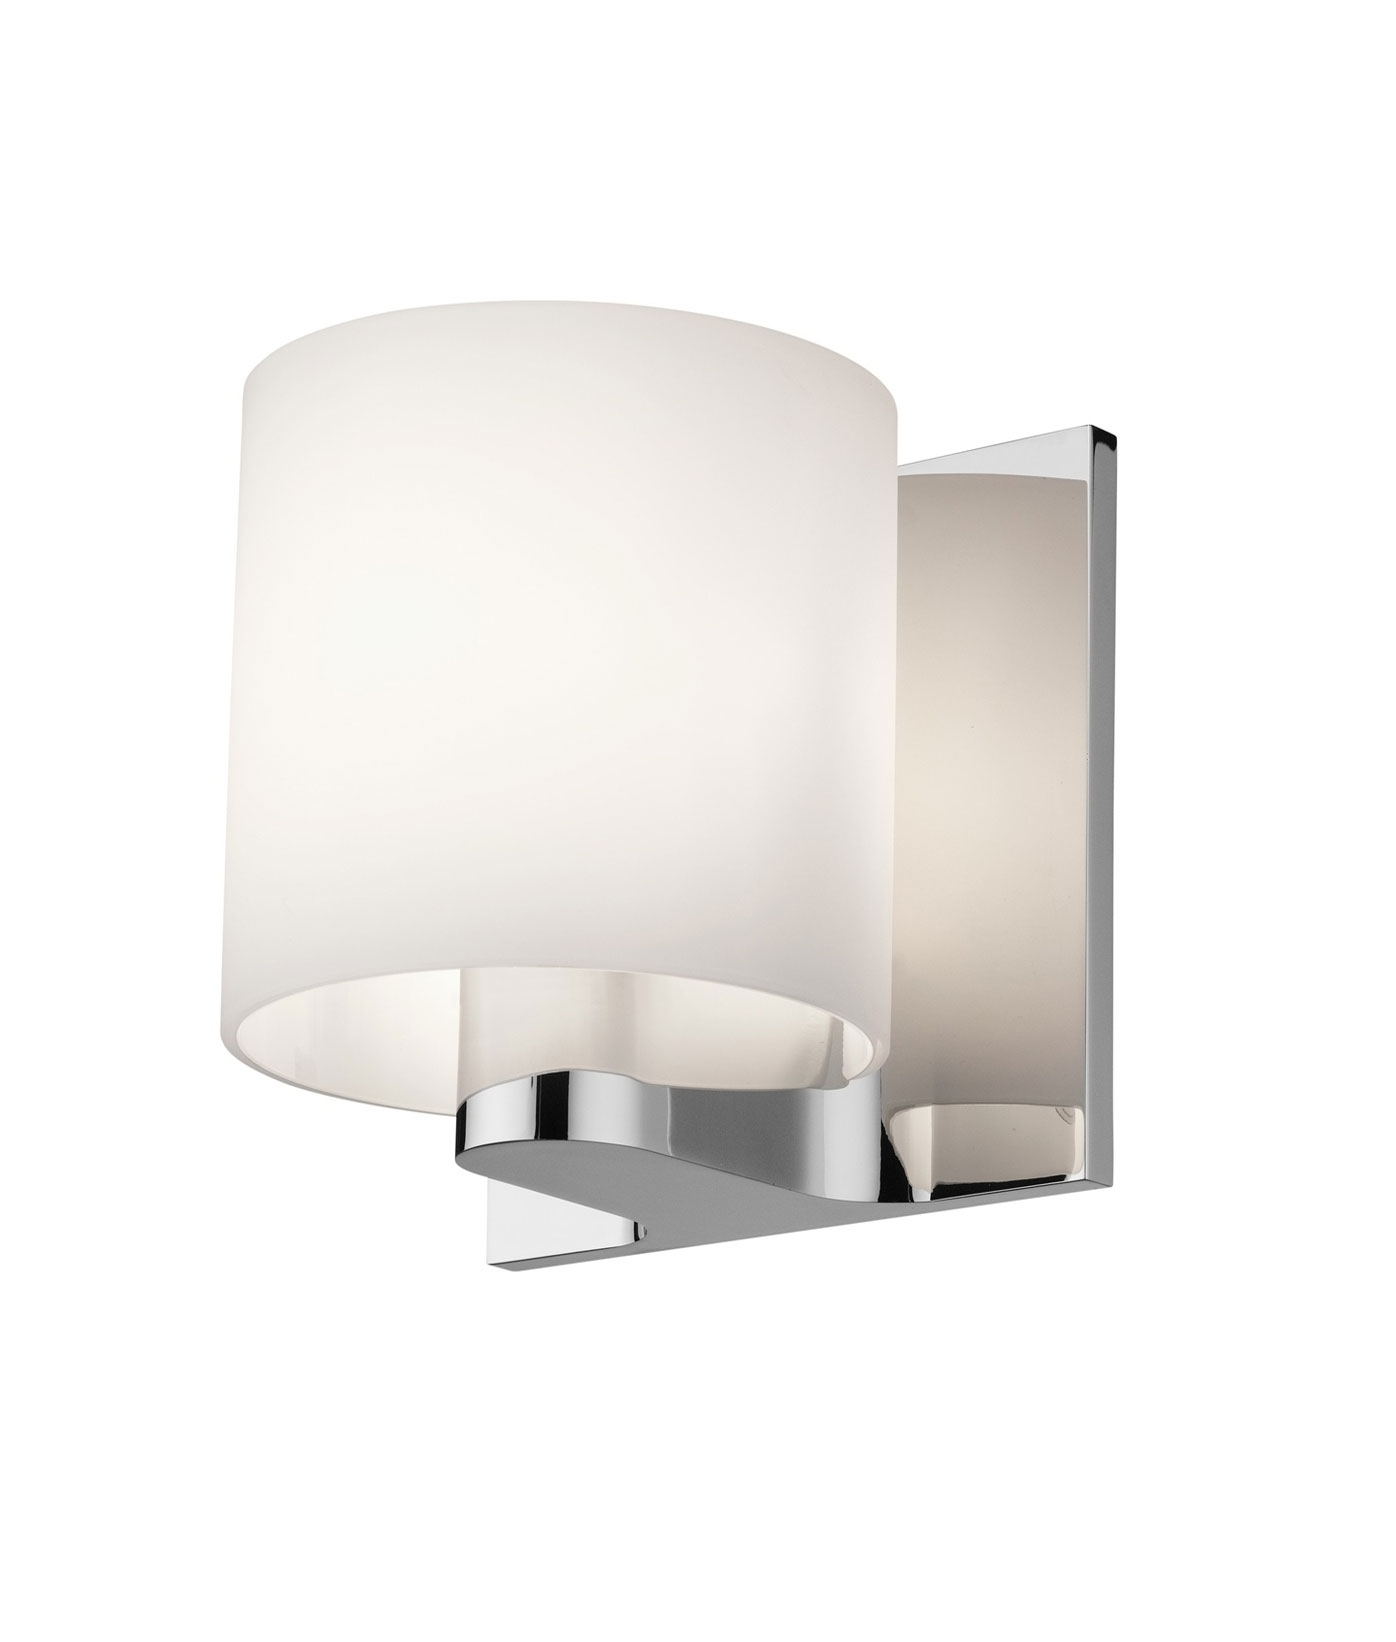 Wall Light Flos Tilee Wall Light